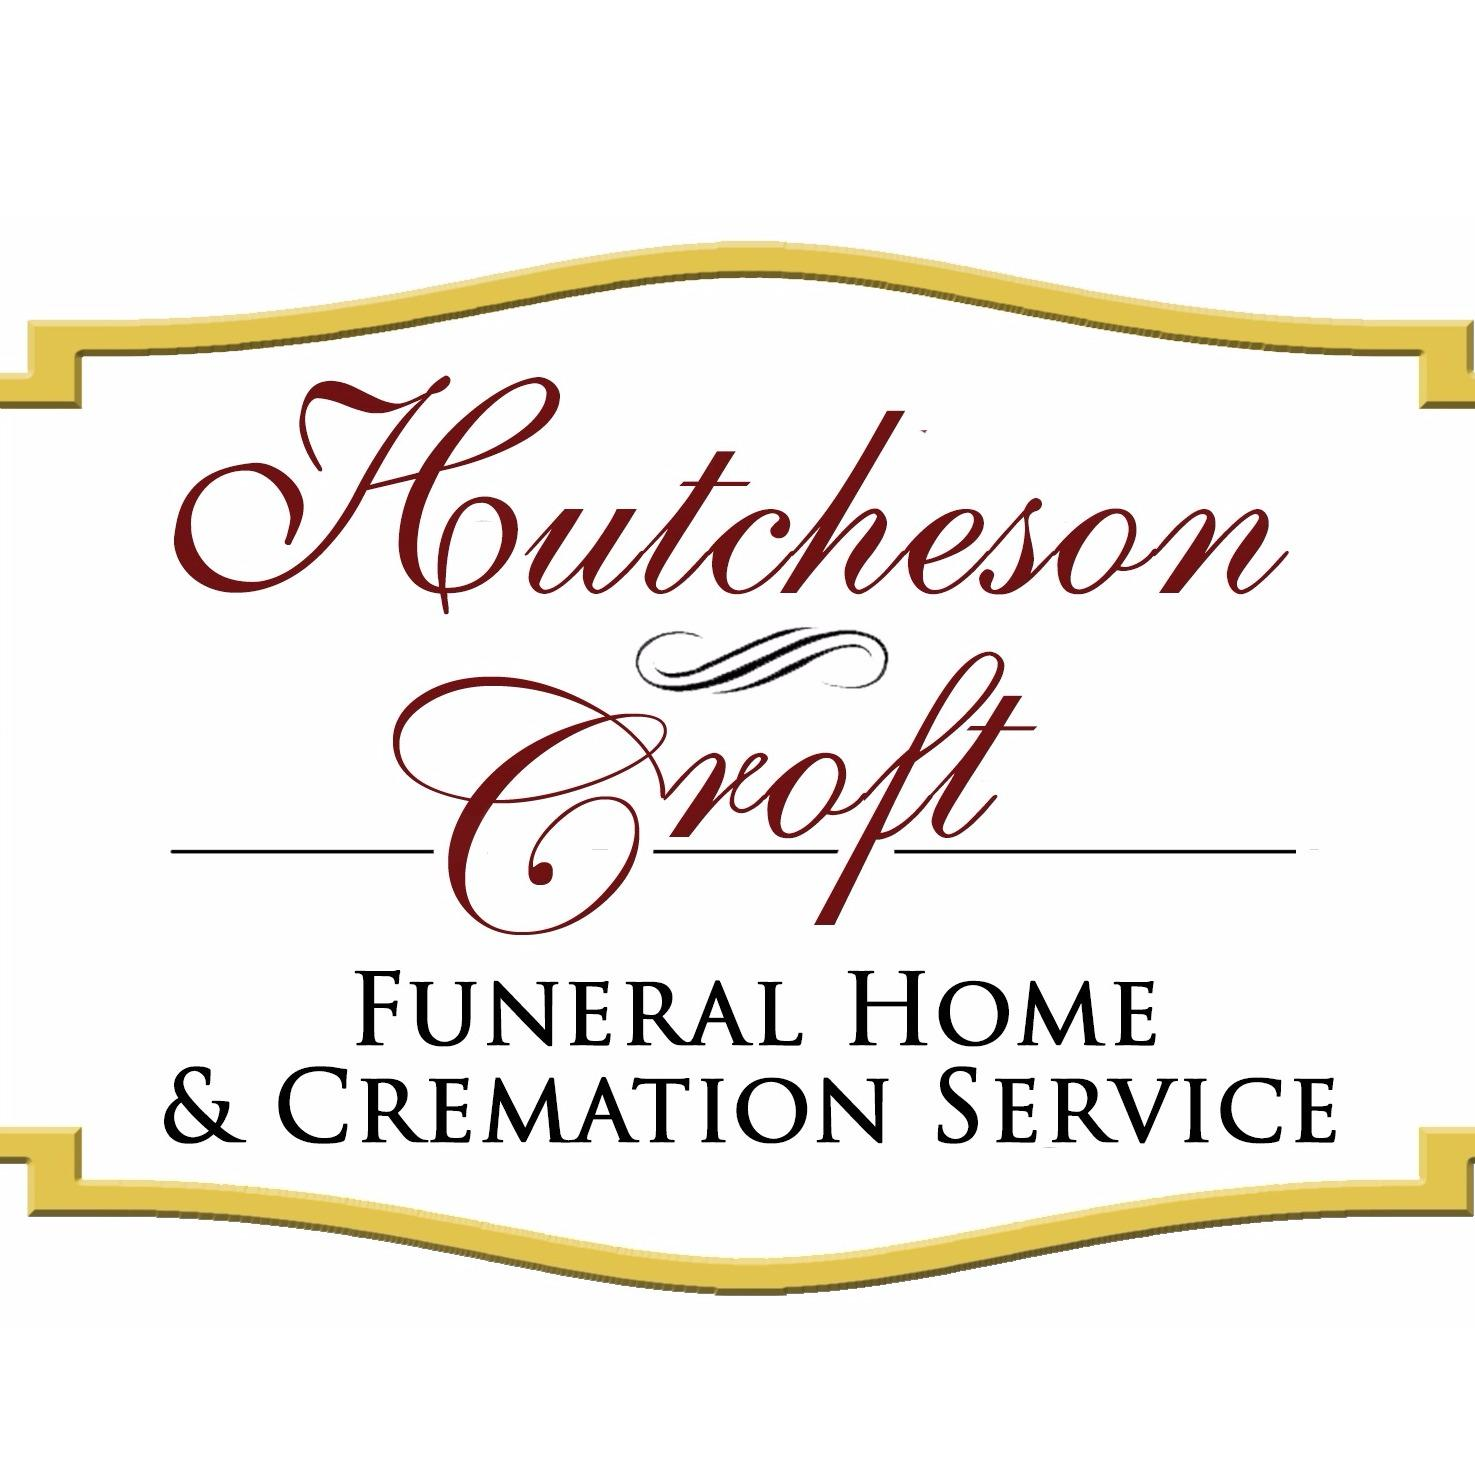 Hutcheson-Croft Funeral Home and Cremation Service